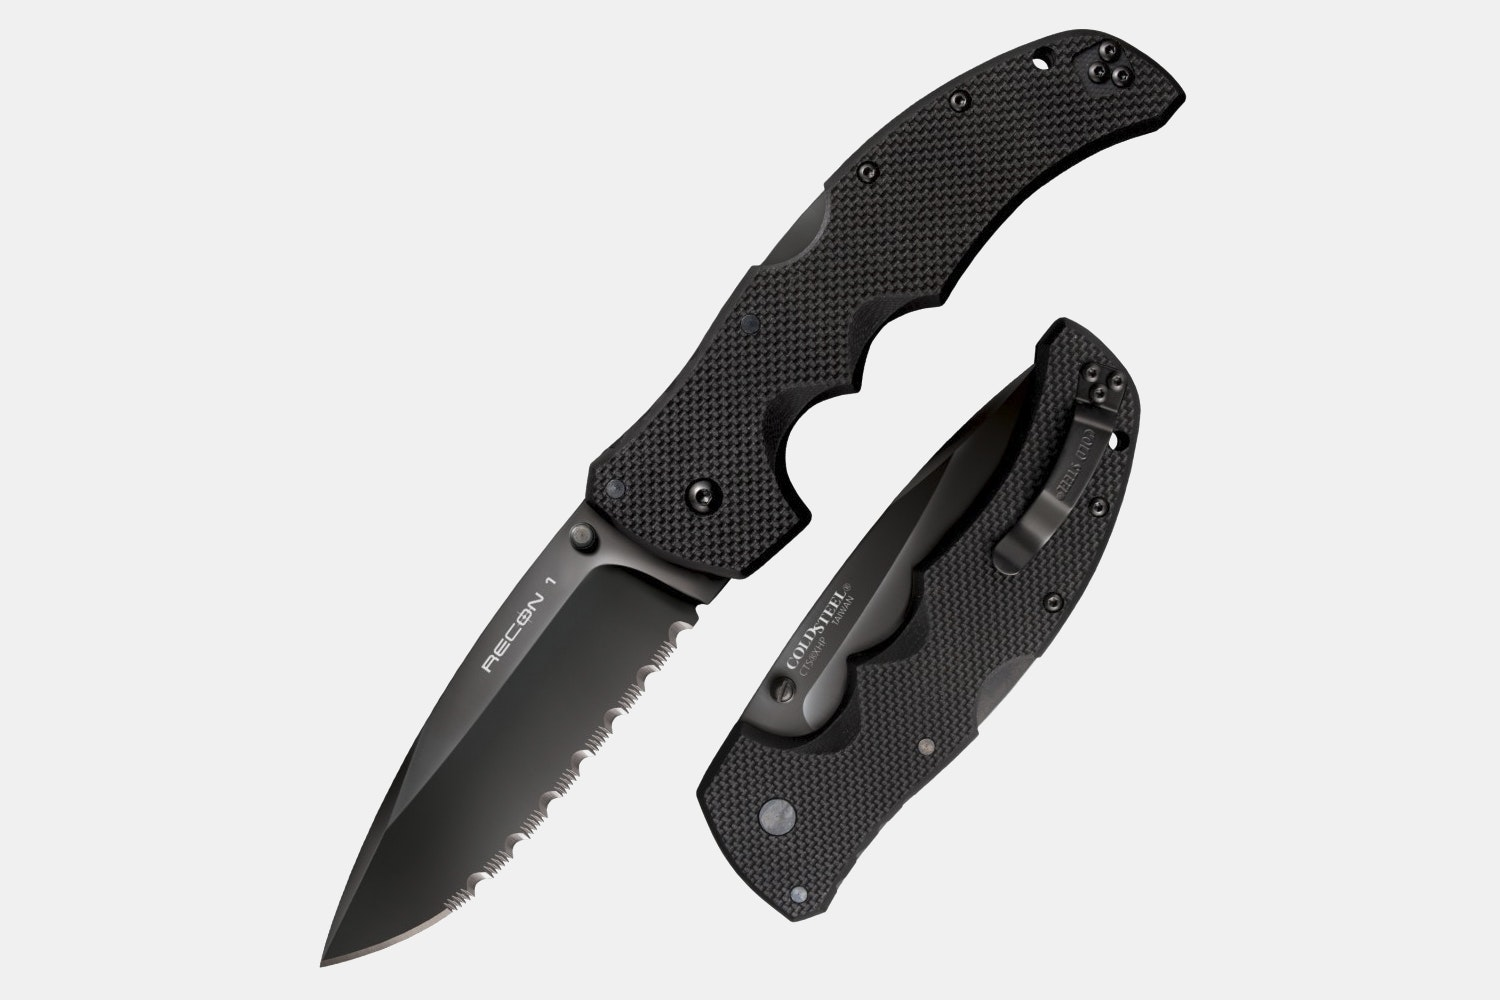 Spear-Point Serrated (Black Handle)